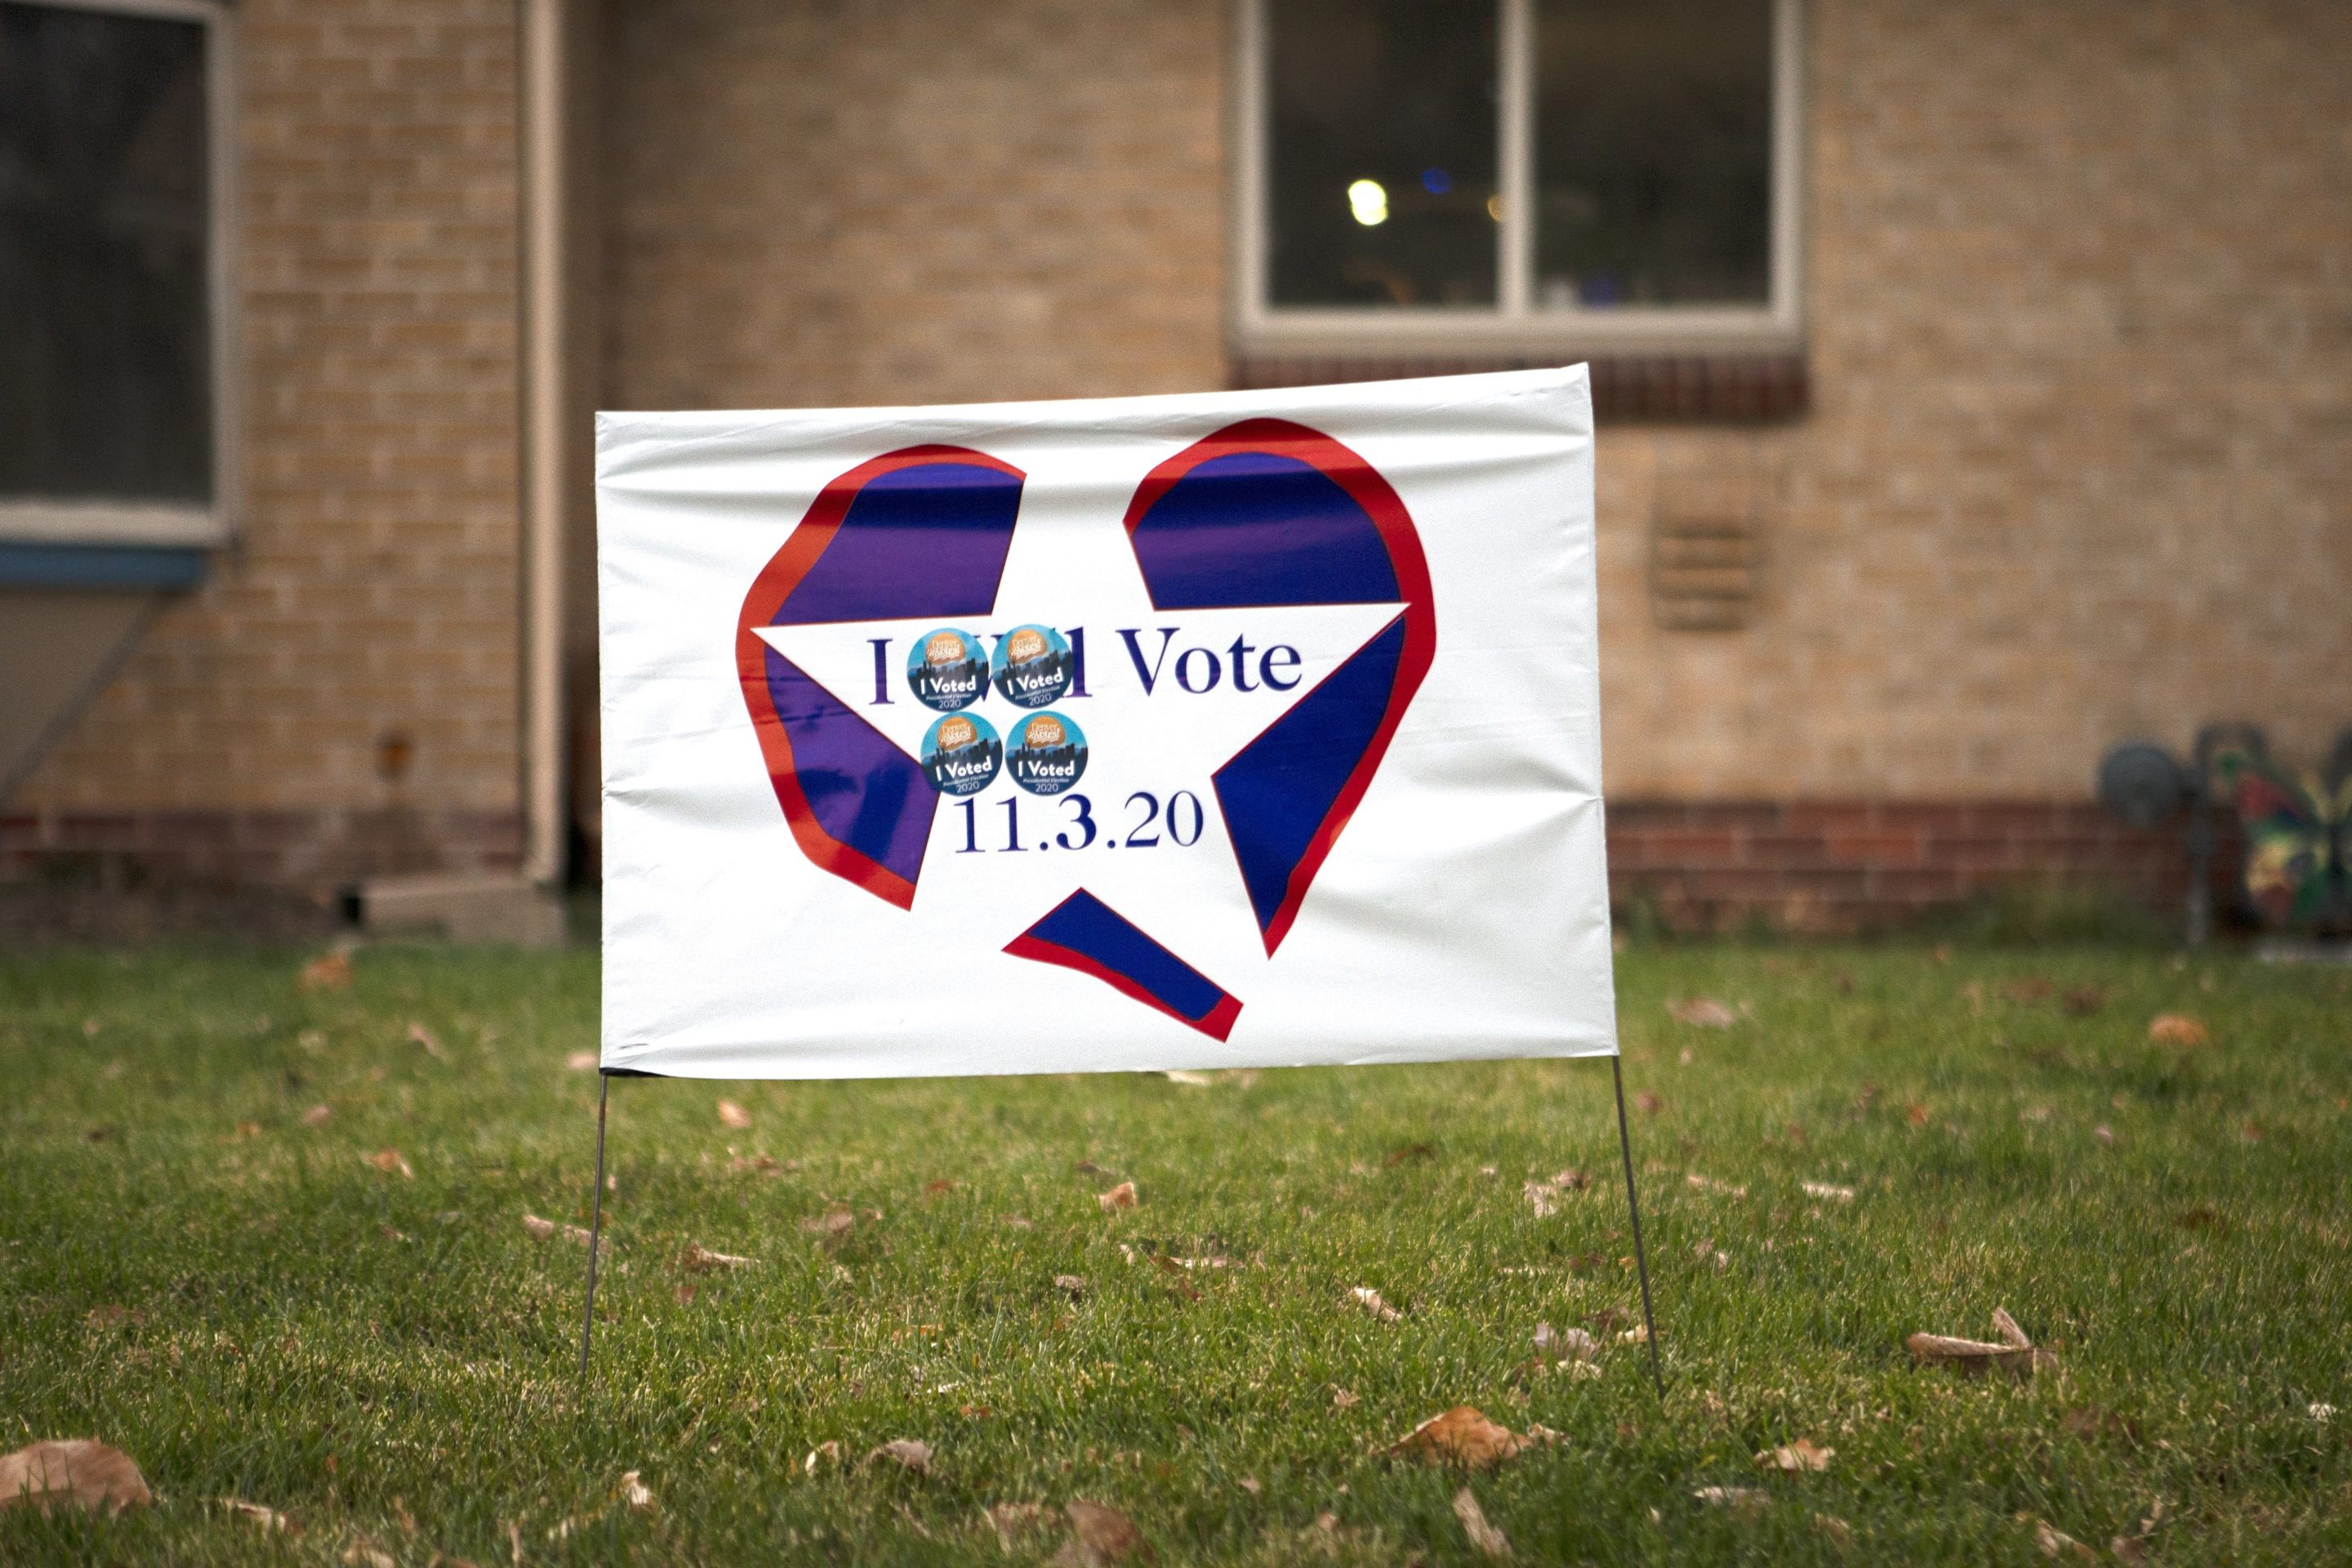 Opinion: Coloradans uphold progressive values and personal freedoms in 2020 election